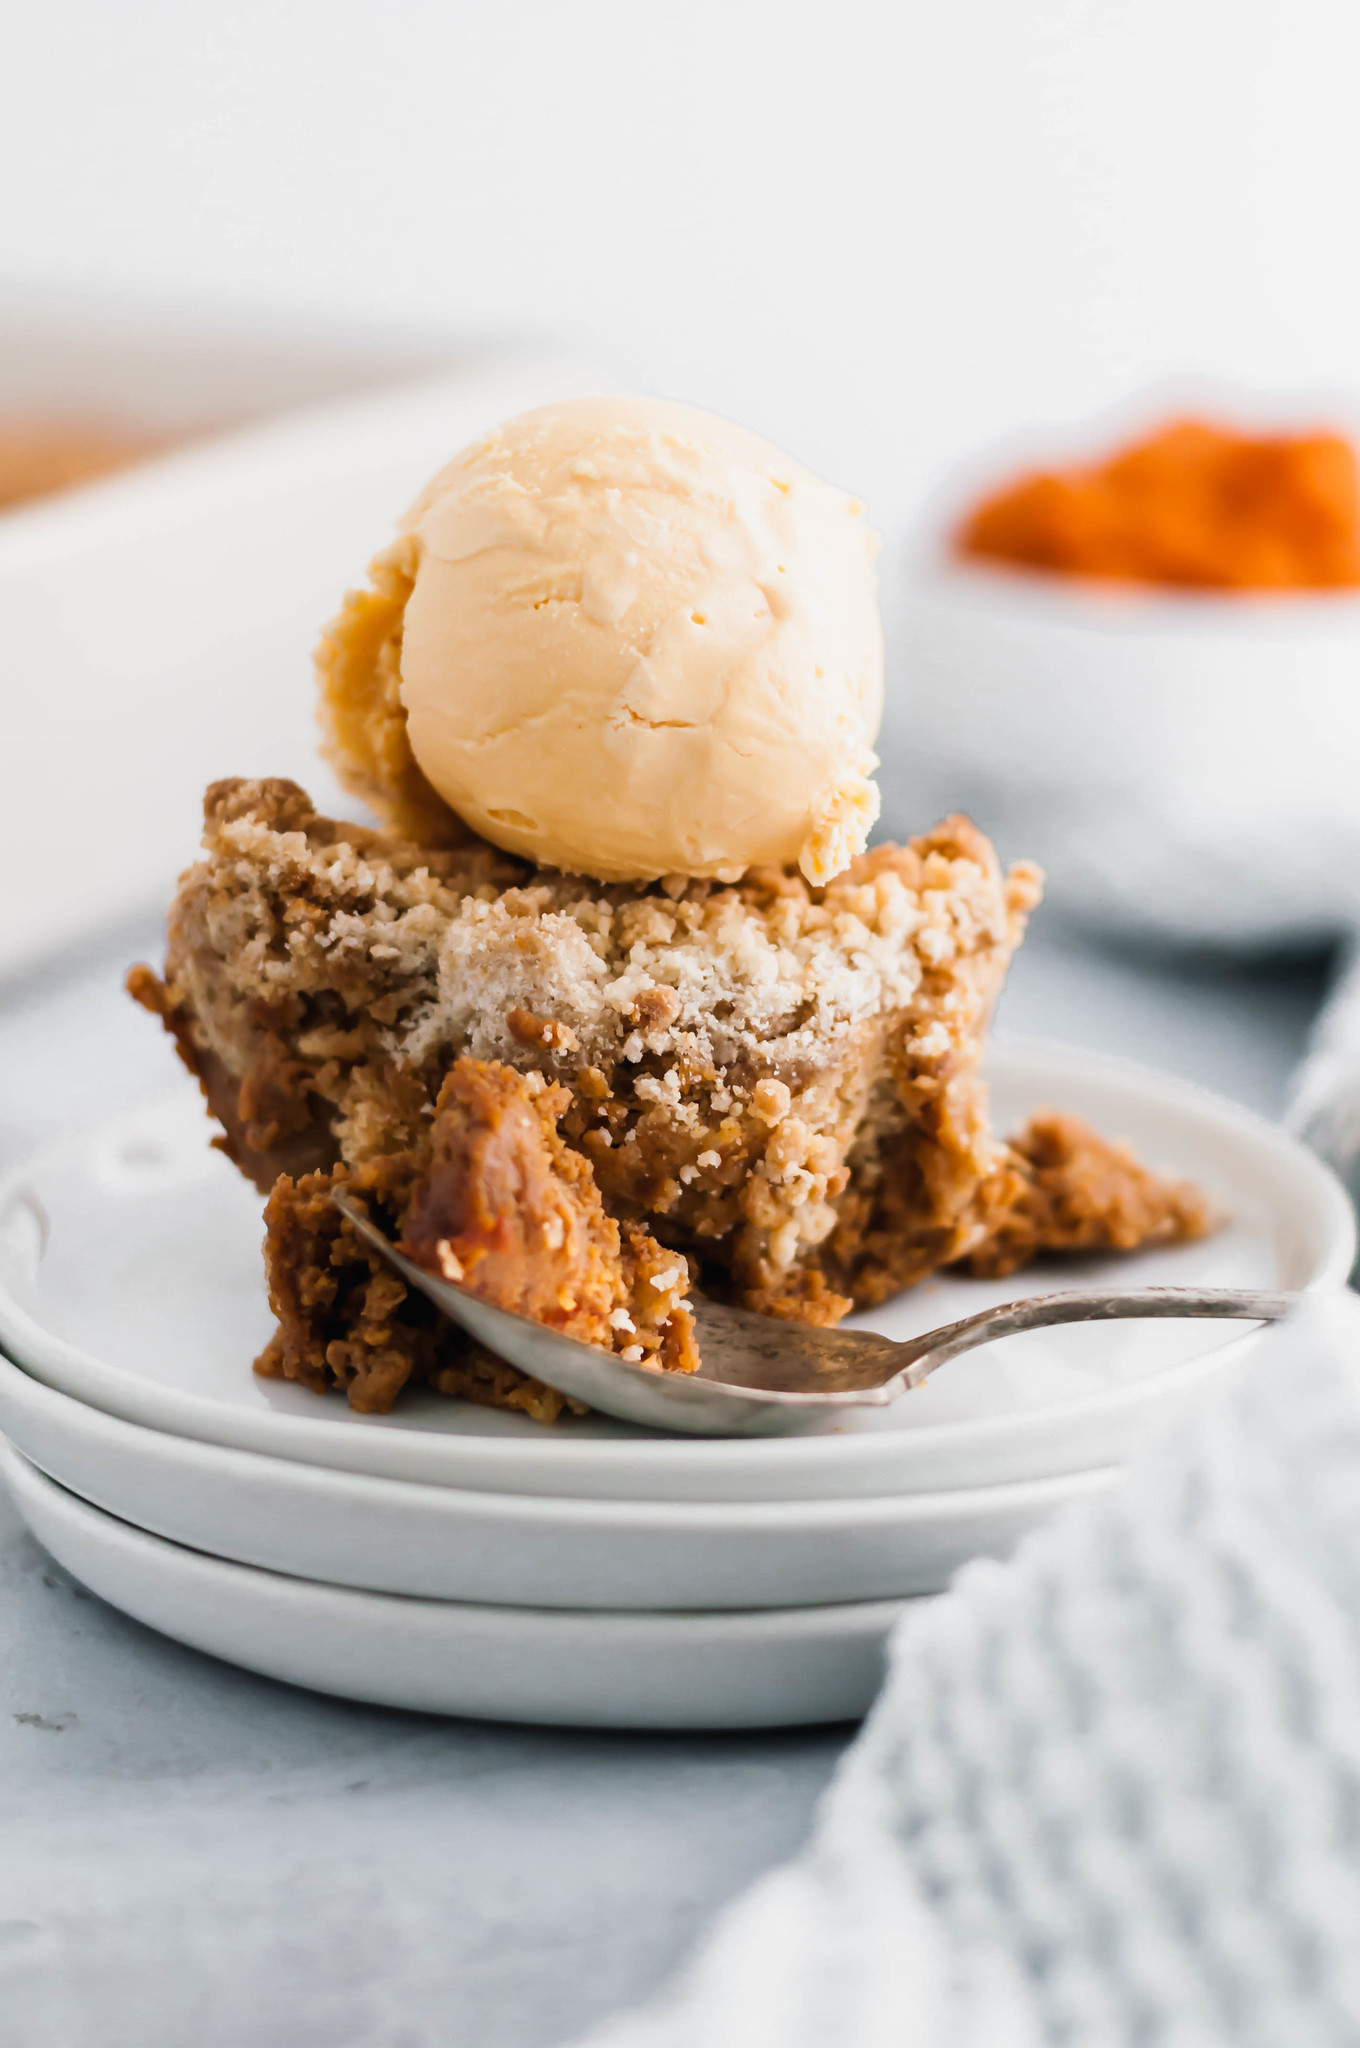 Need an easy dessert for Thanksgiving? Prepared in less than 10 minutes and make ahead friendly, this Pumpkin Crisp will bring a major fall mood to the table.